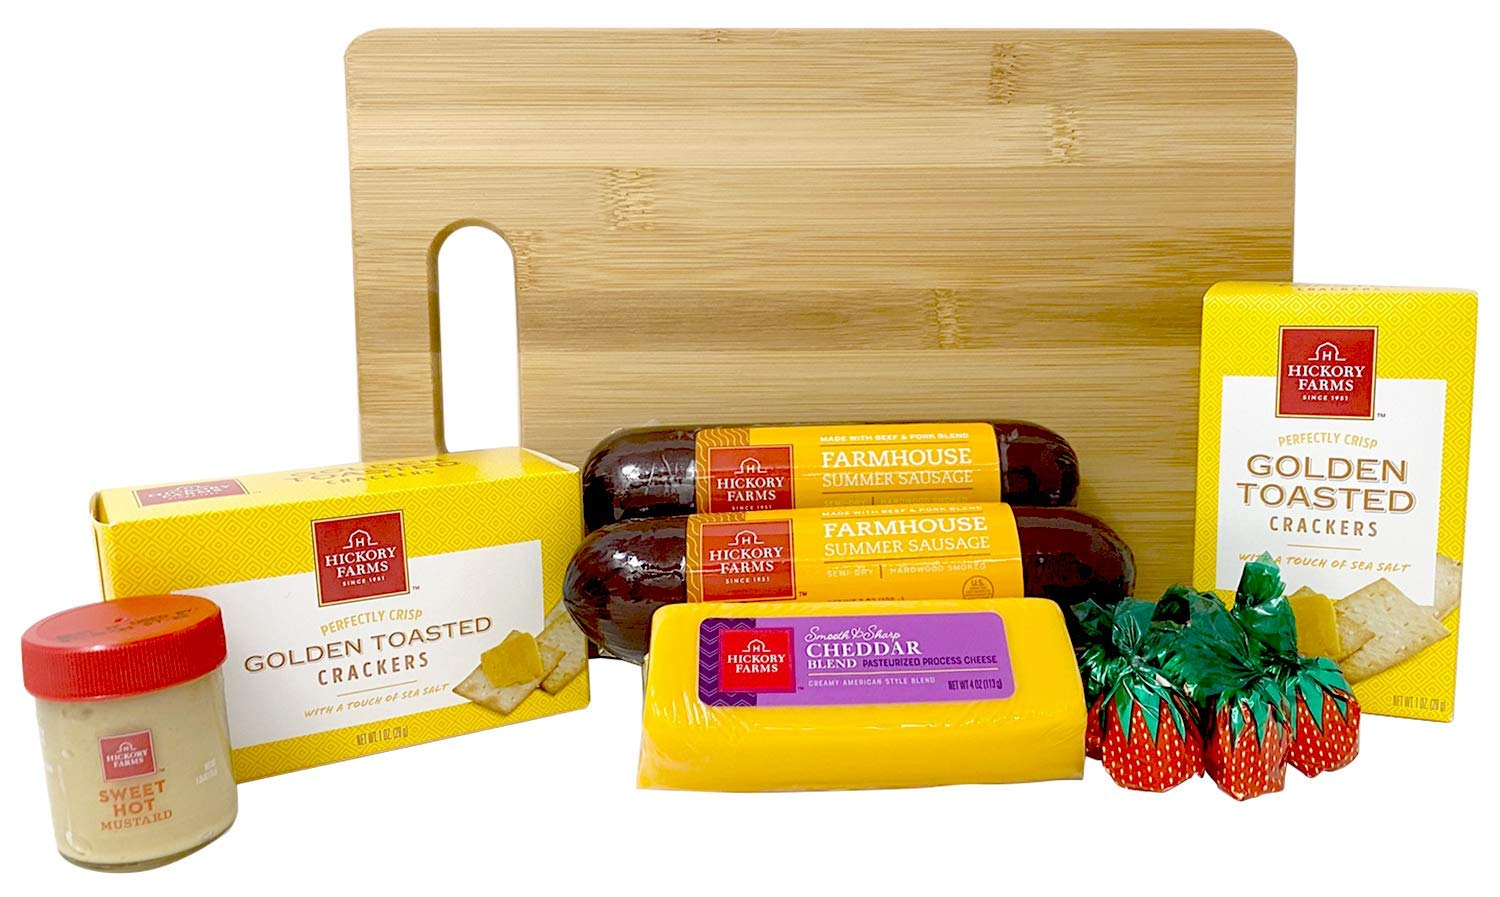 Hickory Farms Meat and Cheese Gift Baskets Farm House Collection With Exclusive Bamboo Cutting Board Bundle - 1.43 lbs Christmas Food Gifts Including Summer Sausage, Cheese, Mustard, and Crackers